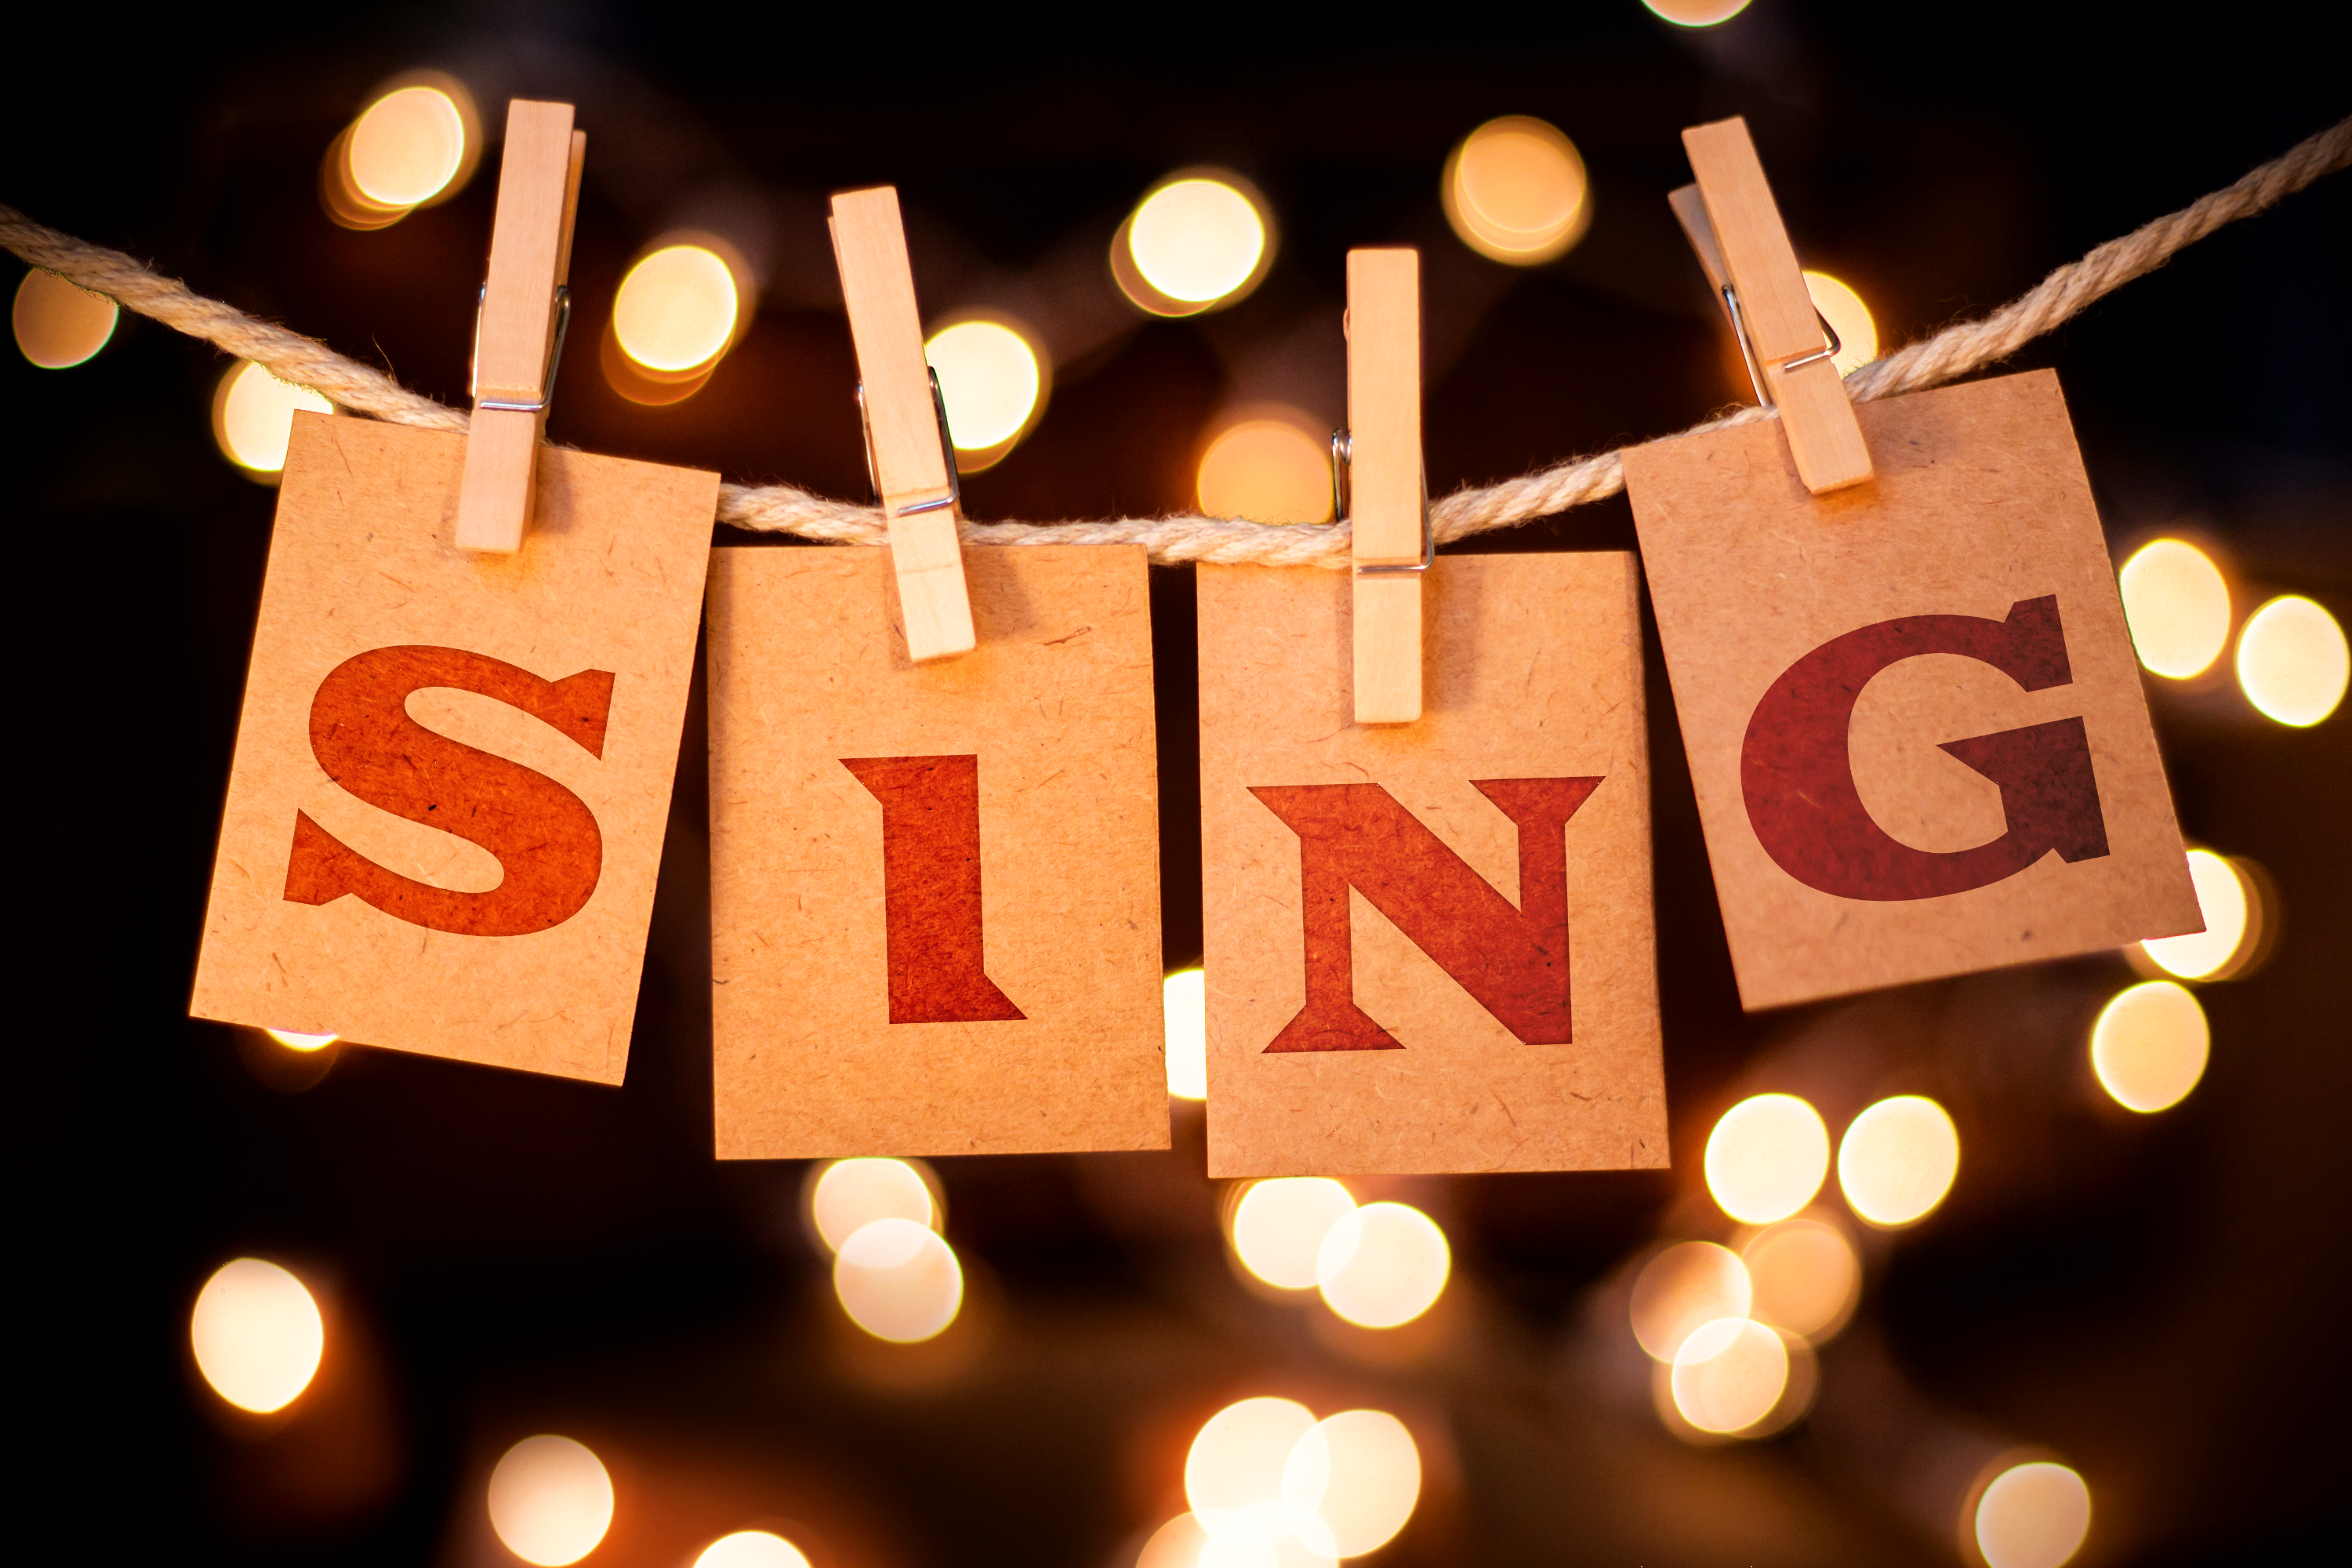 """SING"" hanging with clothespins."